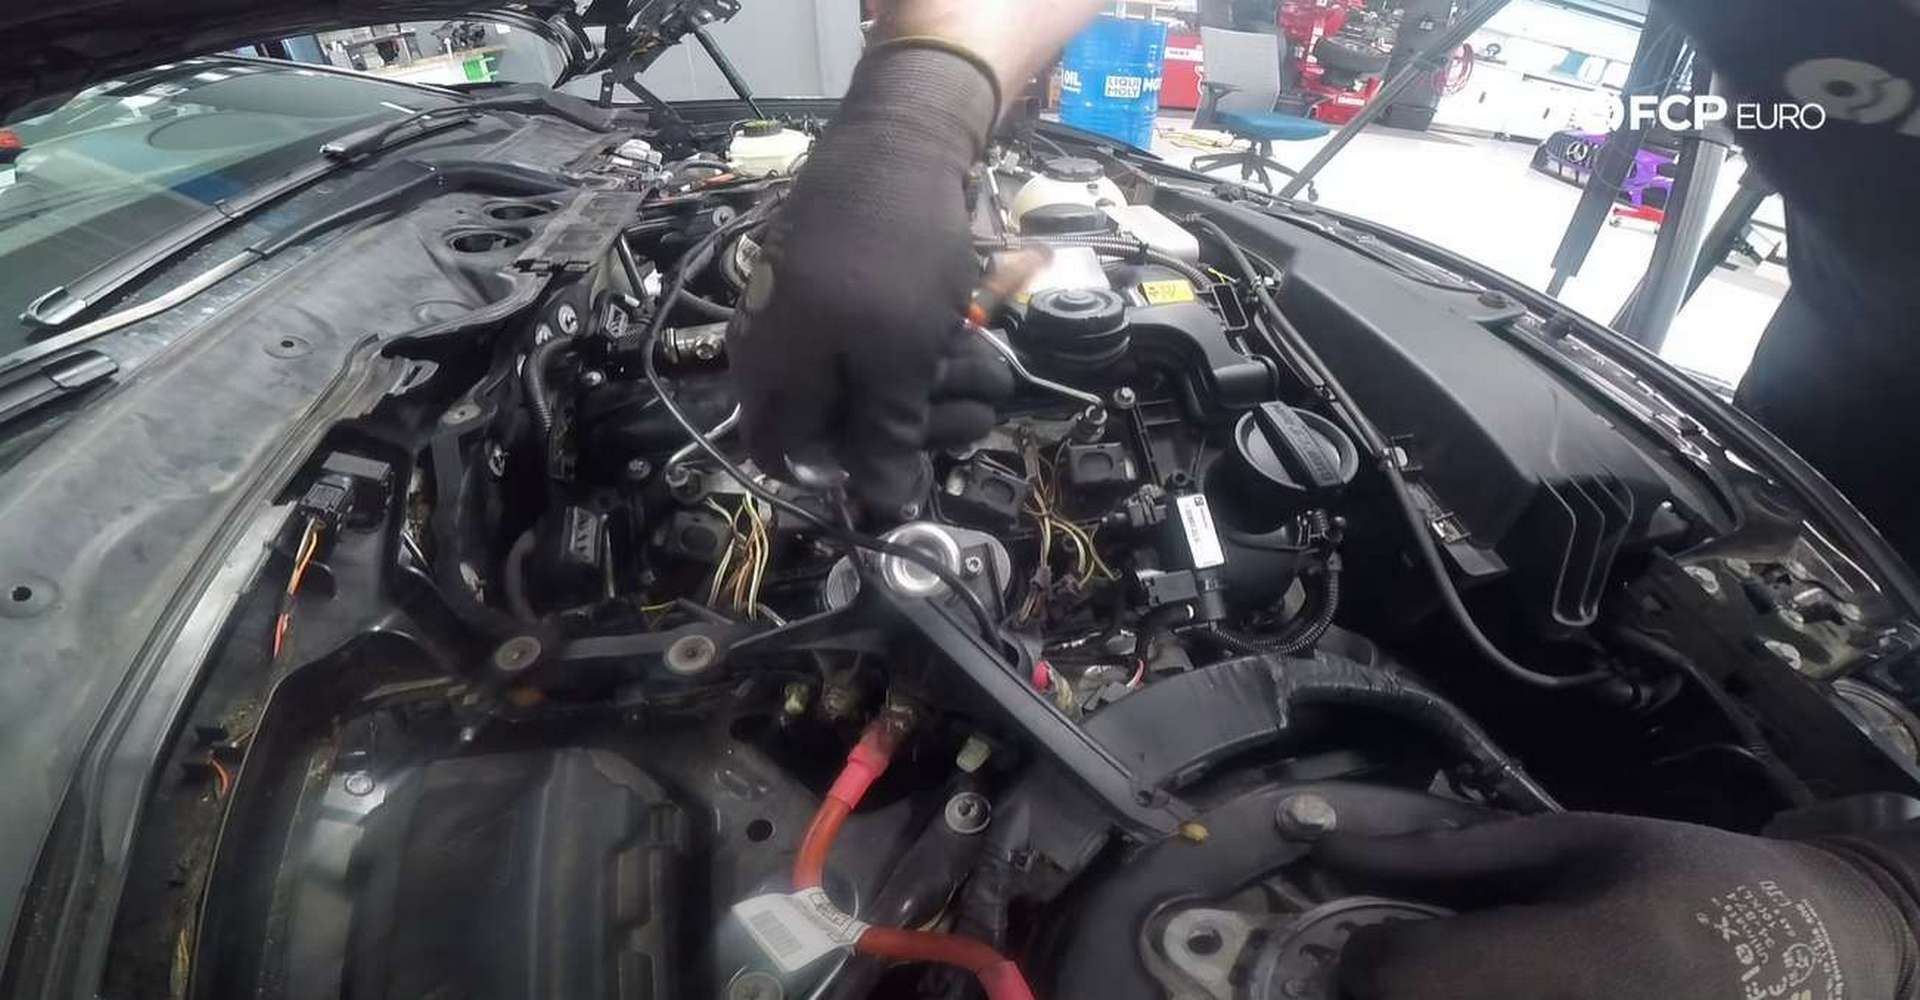 16-DIY-BMW-F30-Valve-Cover-Replacement_Removing-Fuel-System